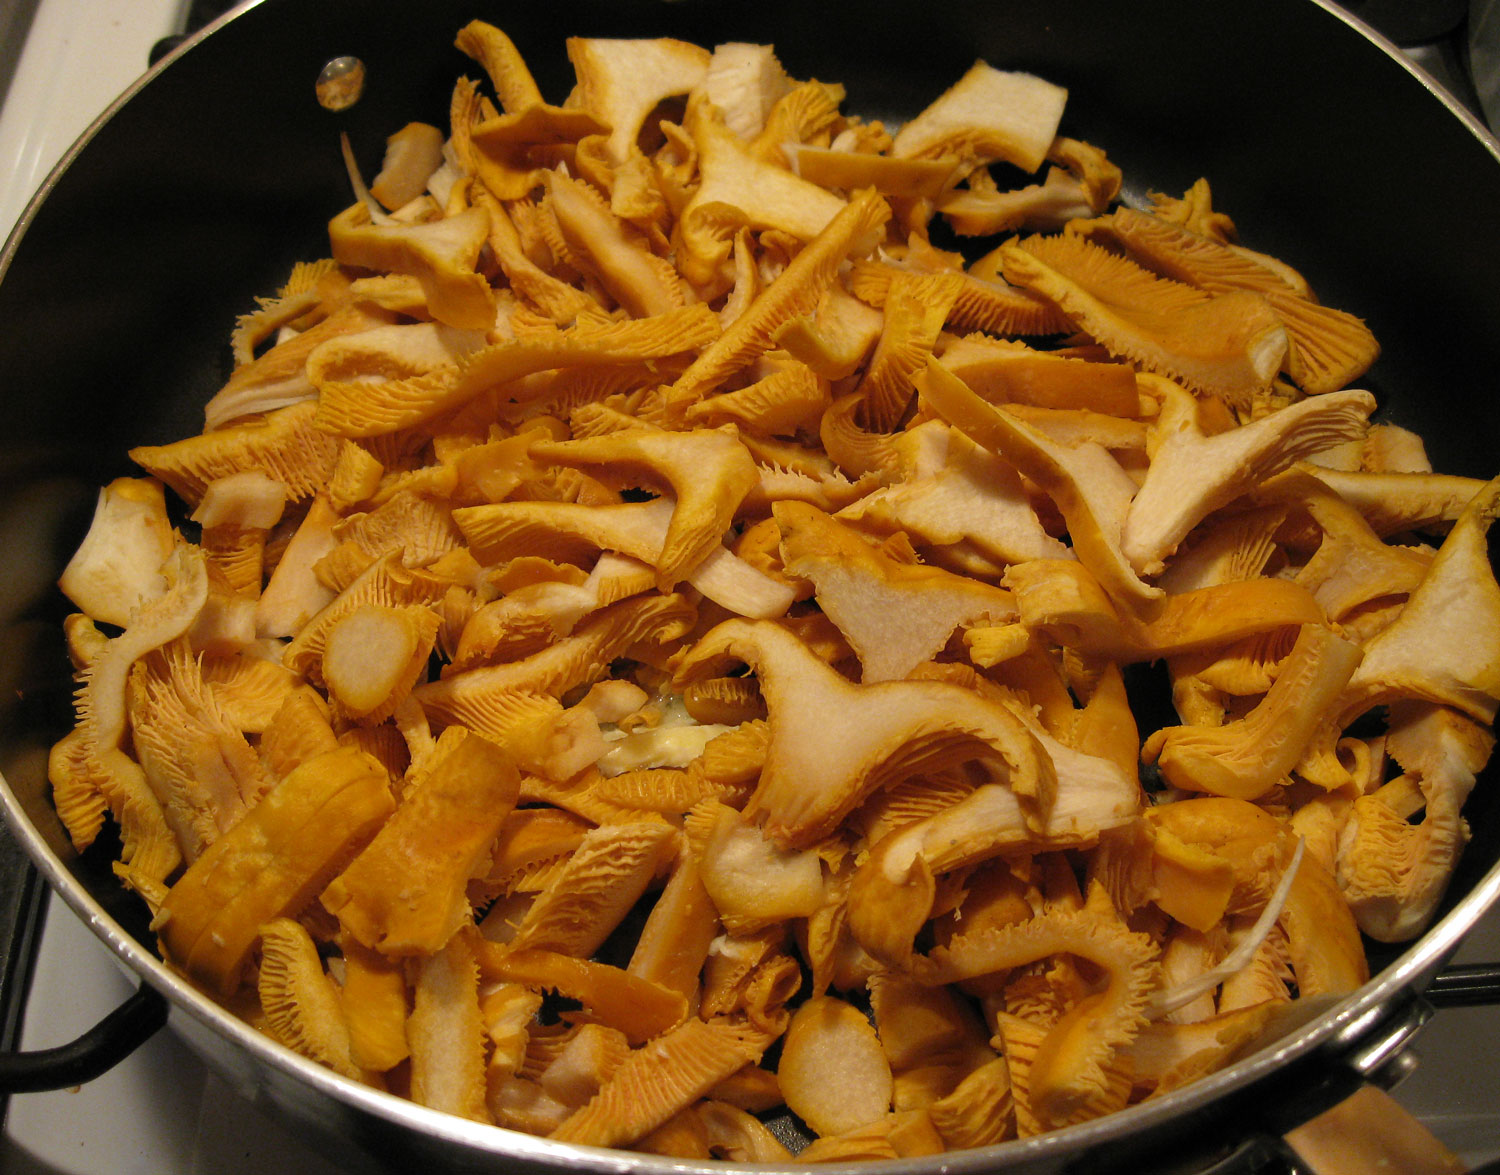 Golden chanterelle mushrooms sliced saute butter edible delicous Southeast Alaska